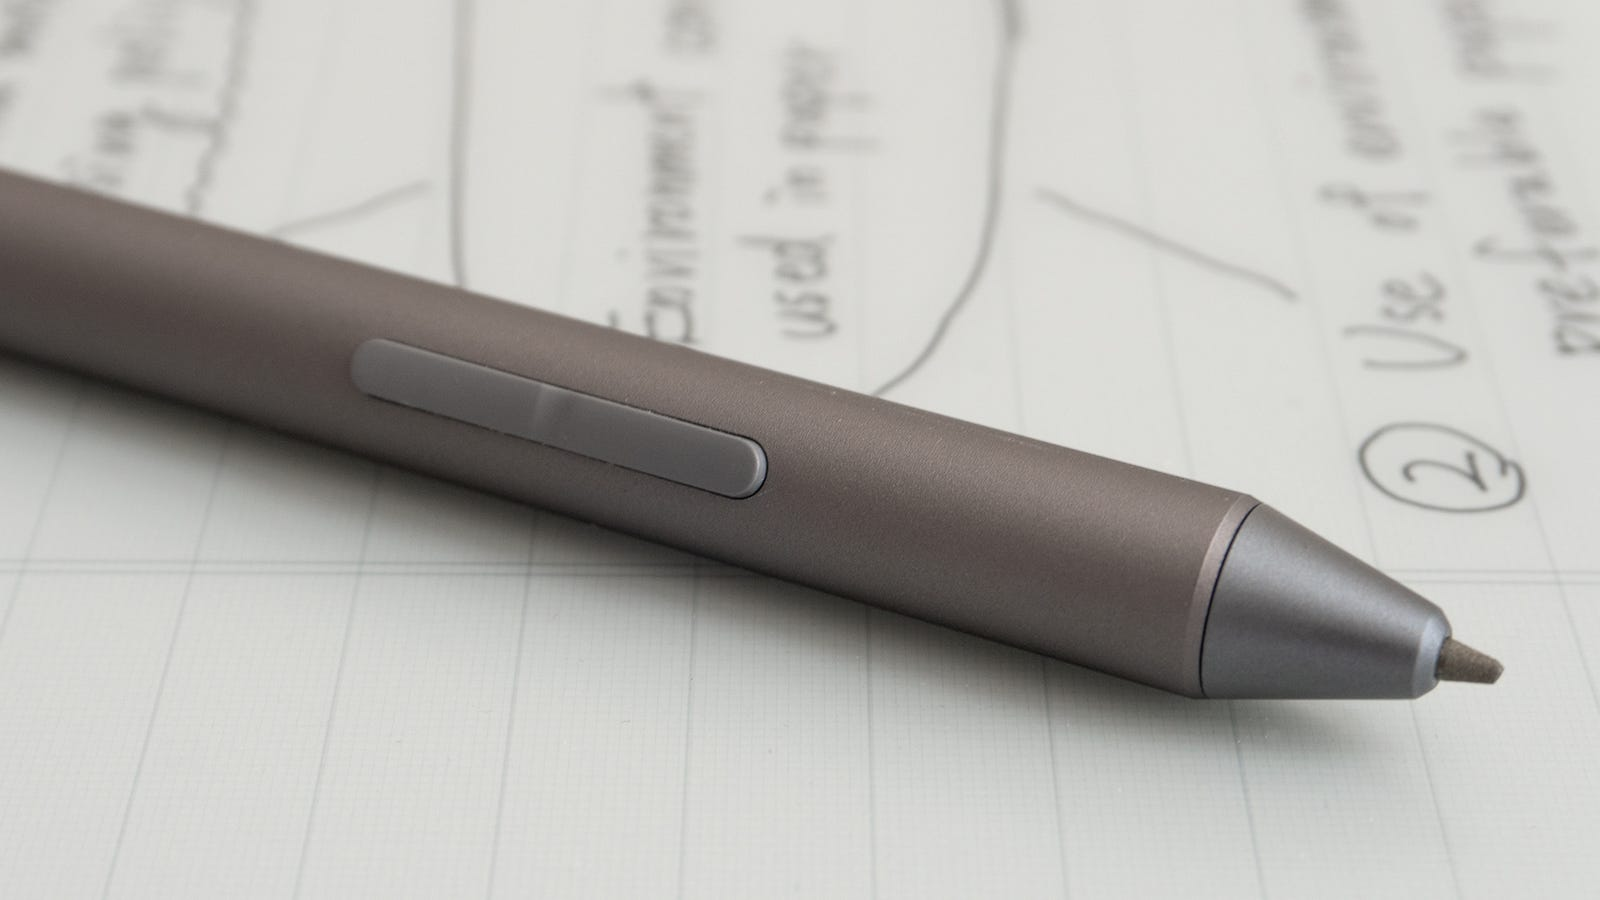 The DPT-RP1's stylus includes two additional buttons for quickly accessing additional functions like erasing notes, or highlighting text.